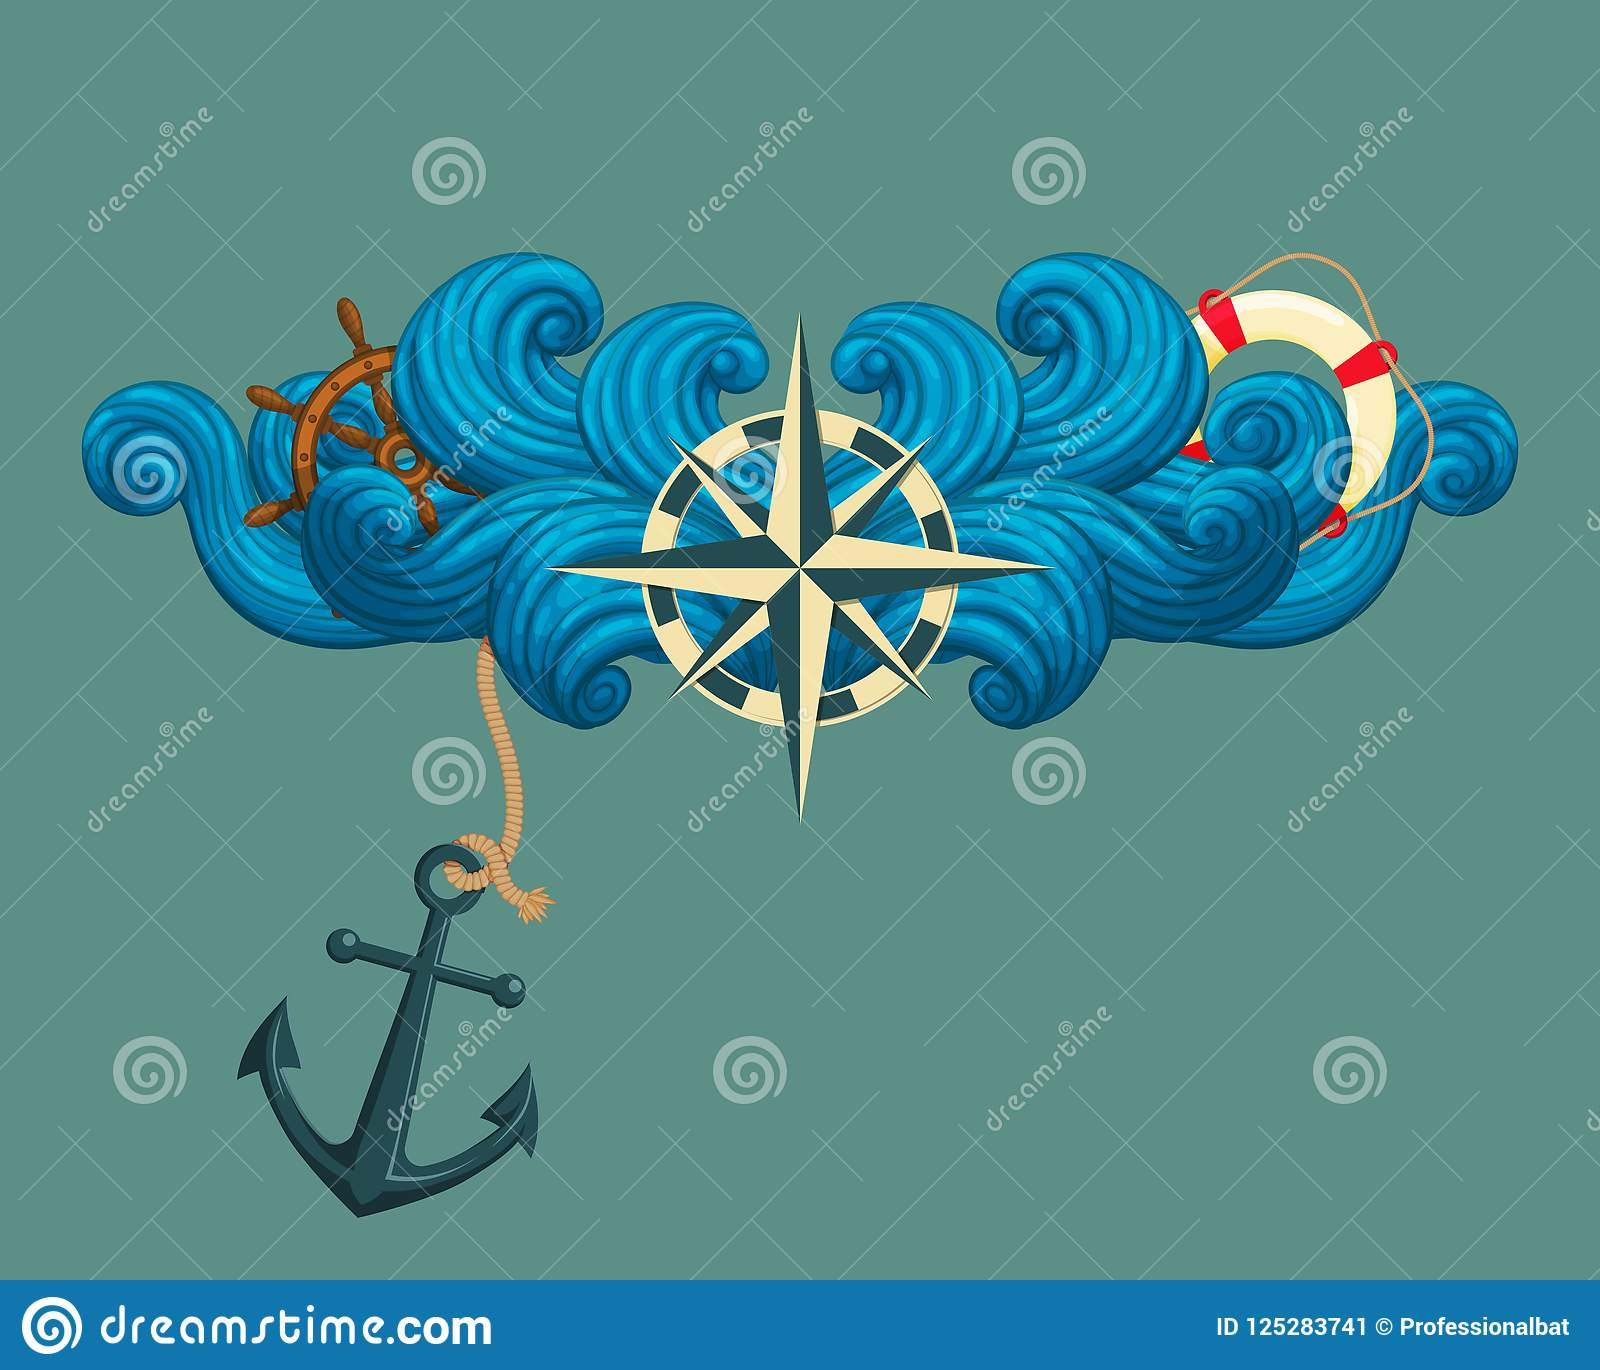 12c8a5876 Rose Of The Winds With Ship`s Wheel, Lifebuoy And Anchor. Stock ...